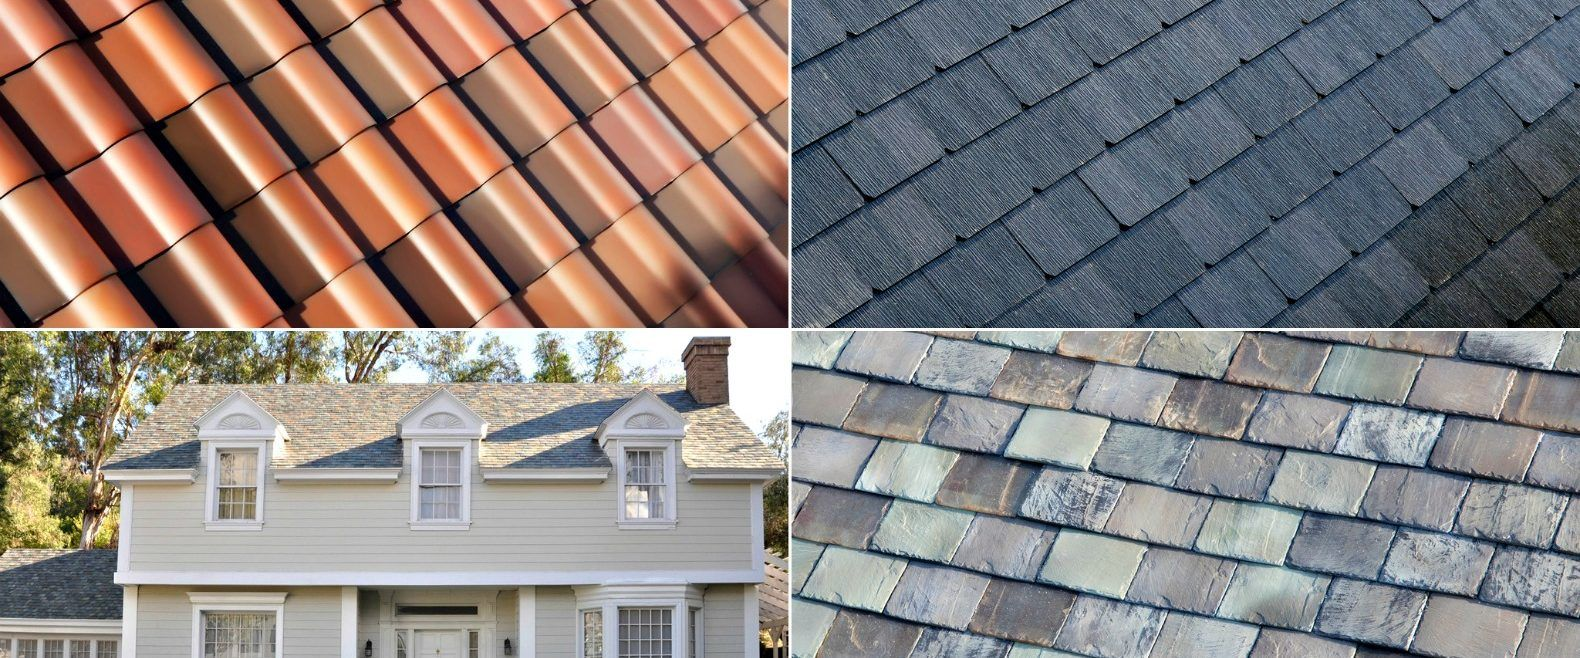 Tesla S New Solar Roof Is Actually Cheaper Than A Normal Roof Solar Roof Best Solar Panels Solar Roof Shingles